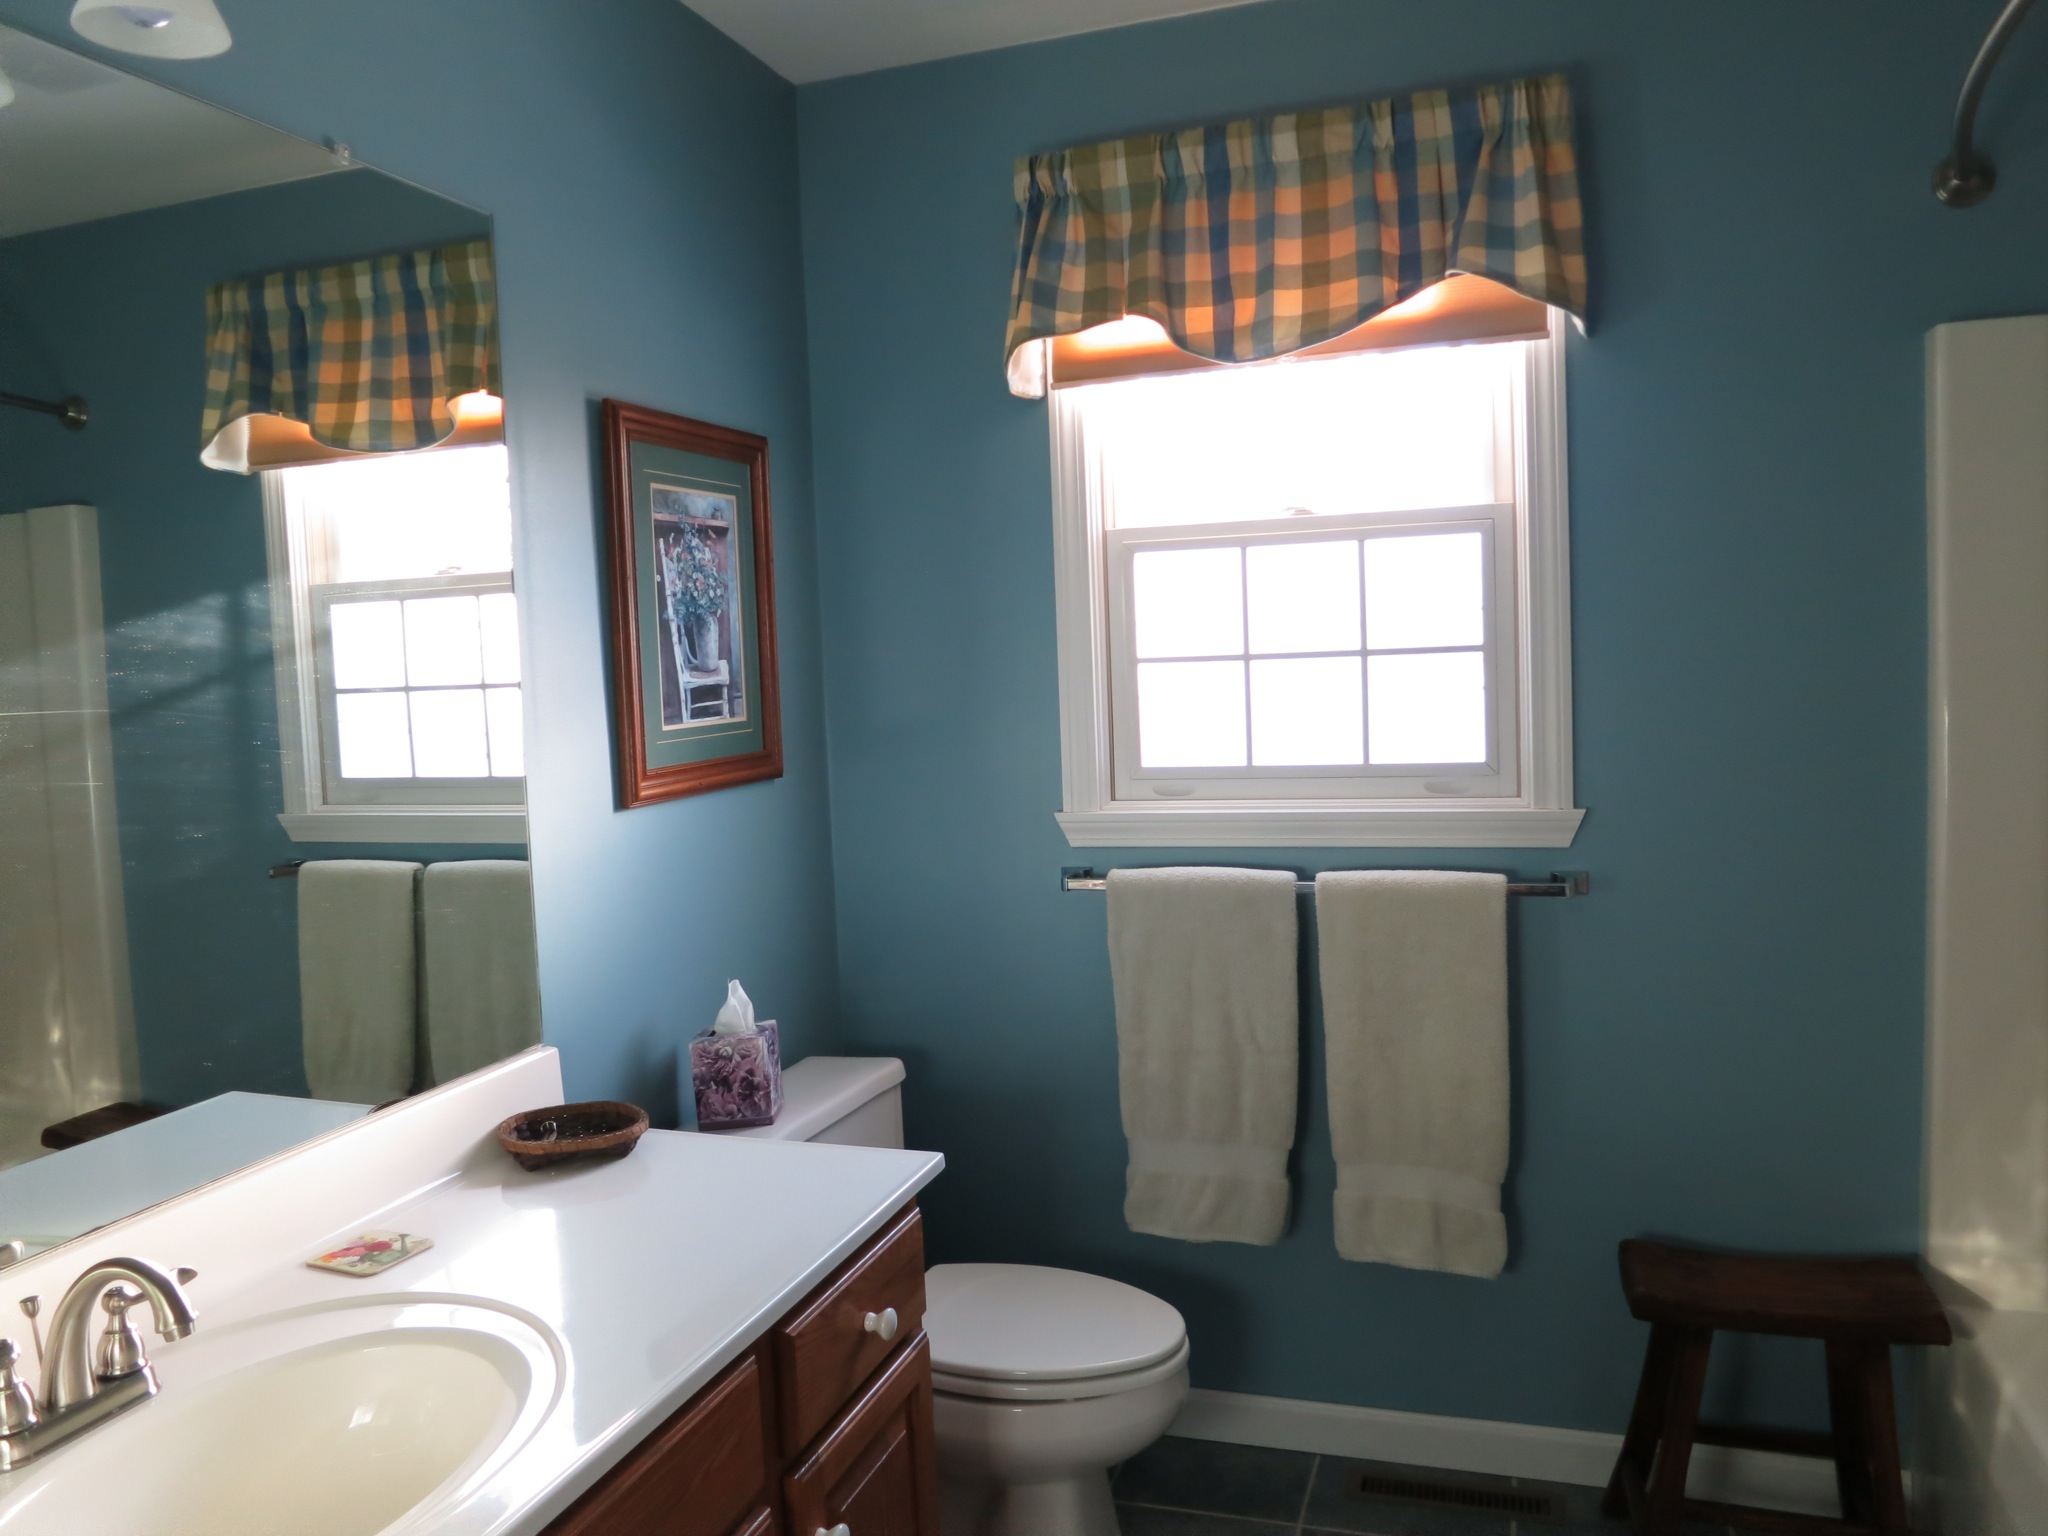 The roomy upstairs bath offers an integrated tub / shower surround, and handy closet space.